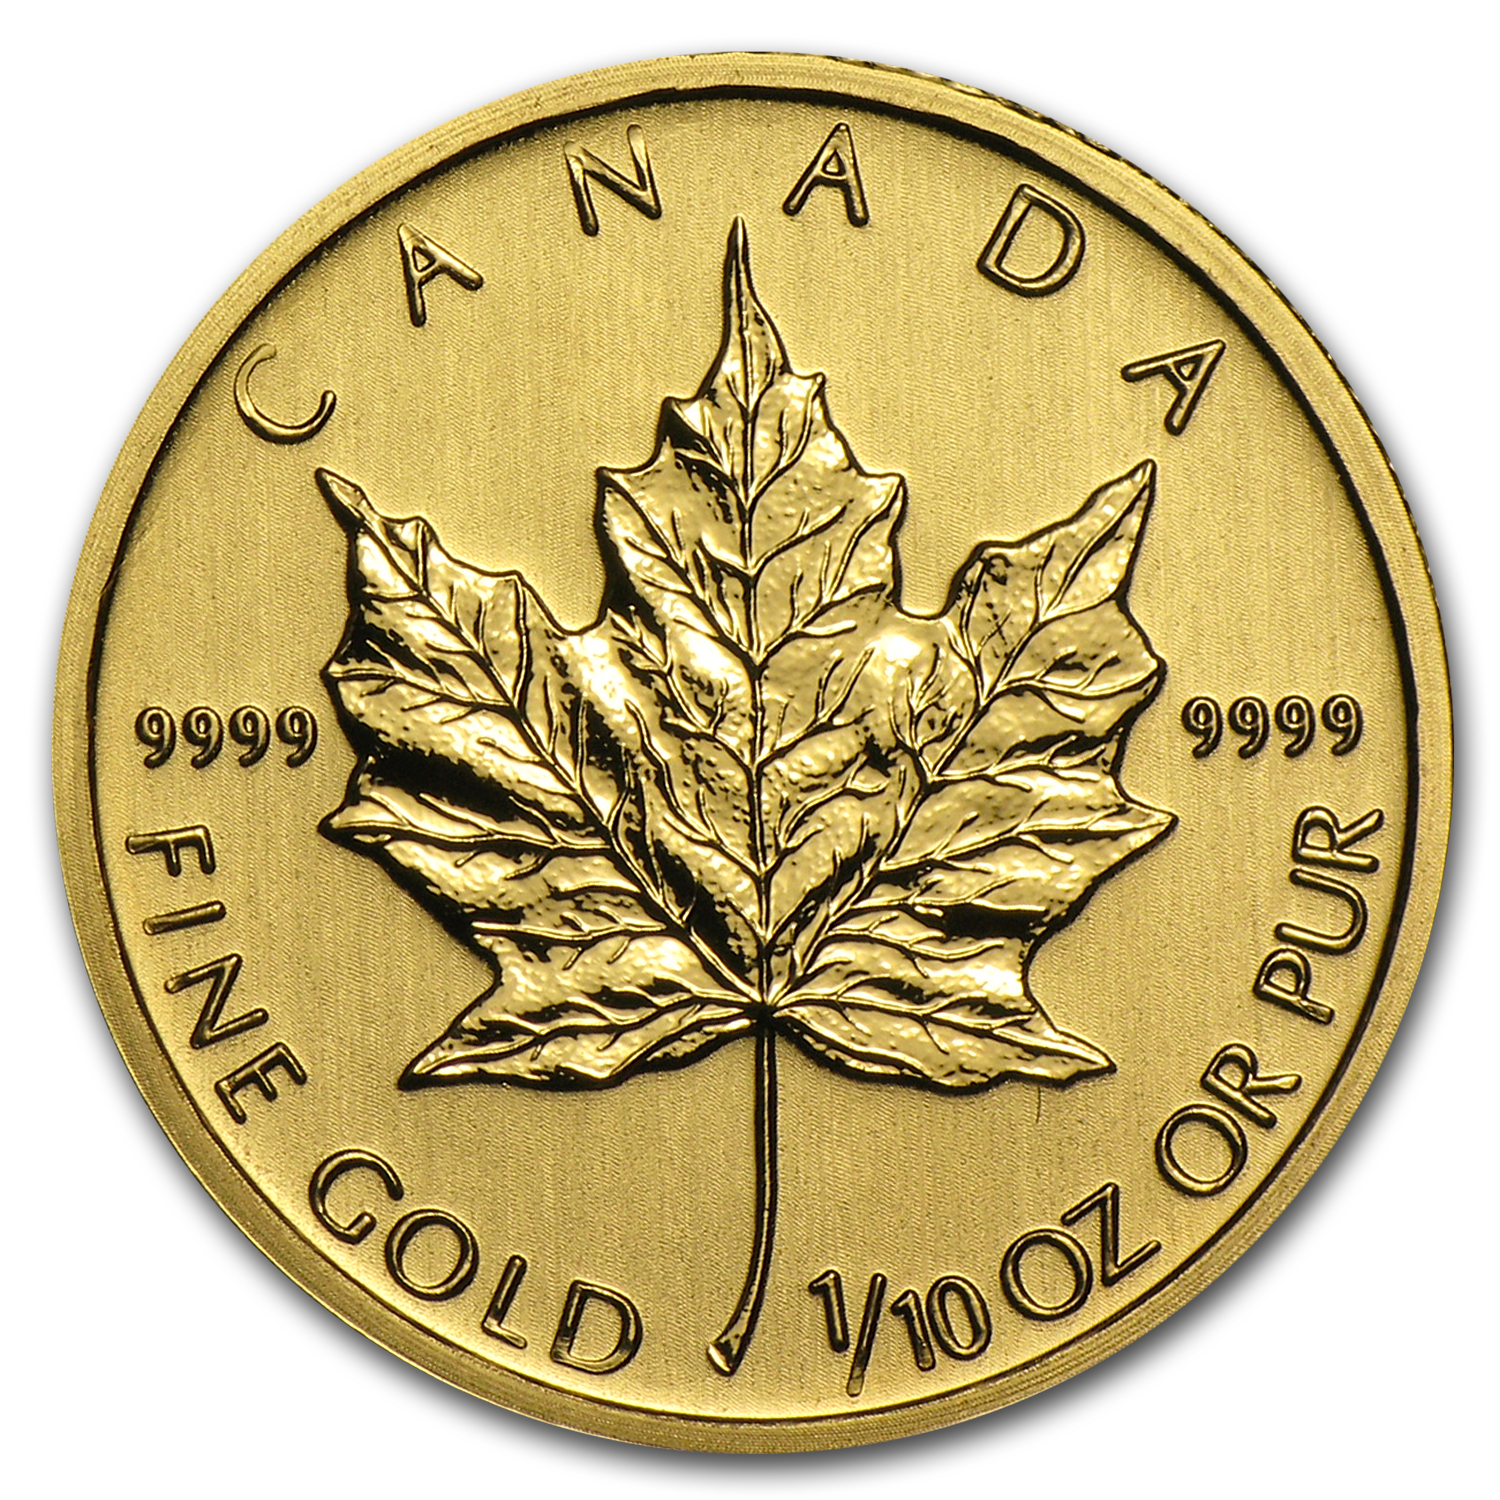 2012 1/10 oz Gold Canadian Maple Leaf